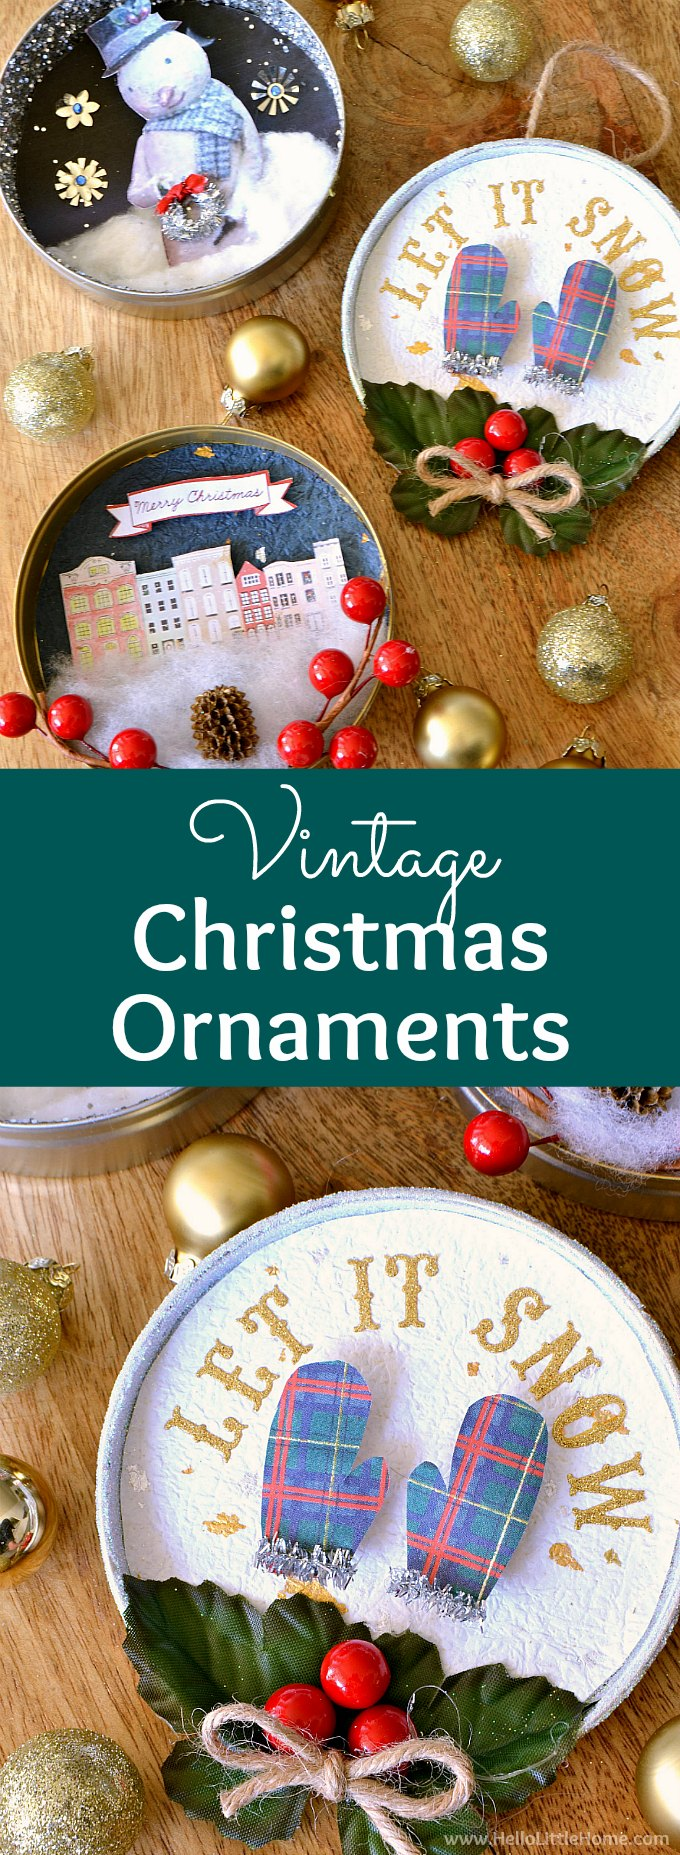 DIY Vintage Christmas Ornaments ... learn how to make homemade Christmas ornaments from paper, glitter, pipe cleaners, clip art, ribbons, and other crafty supplies with this easy tutorial! These beautiful handmade Christmas ornaments are a fun holiday craft that also make a great holiday gift. These unique vintage shadow box ornaments are easy to make and have a fun retro vibe. | Hello Little Home